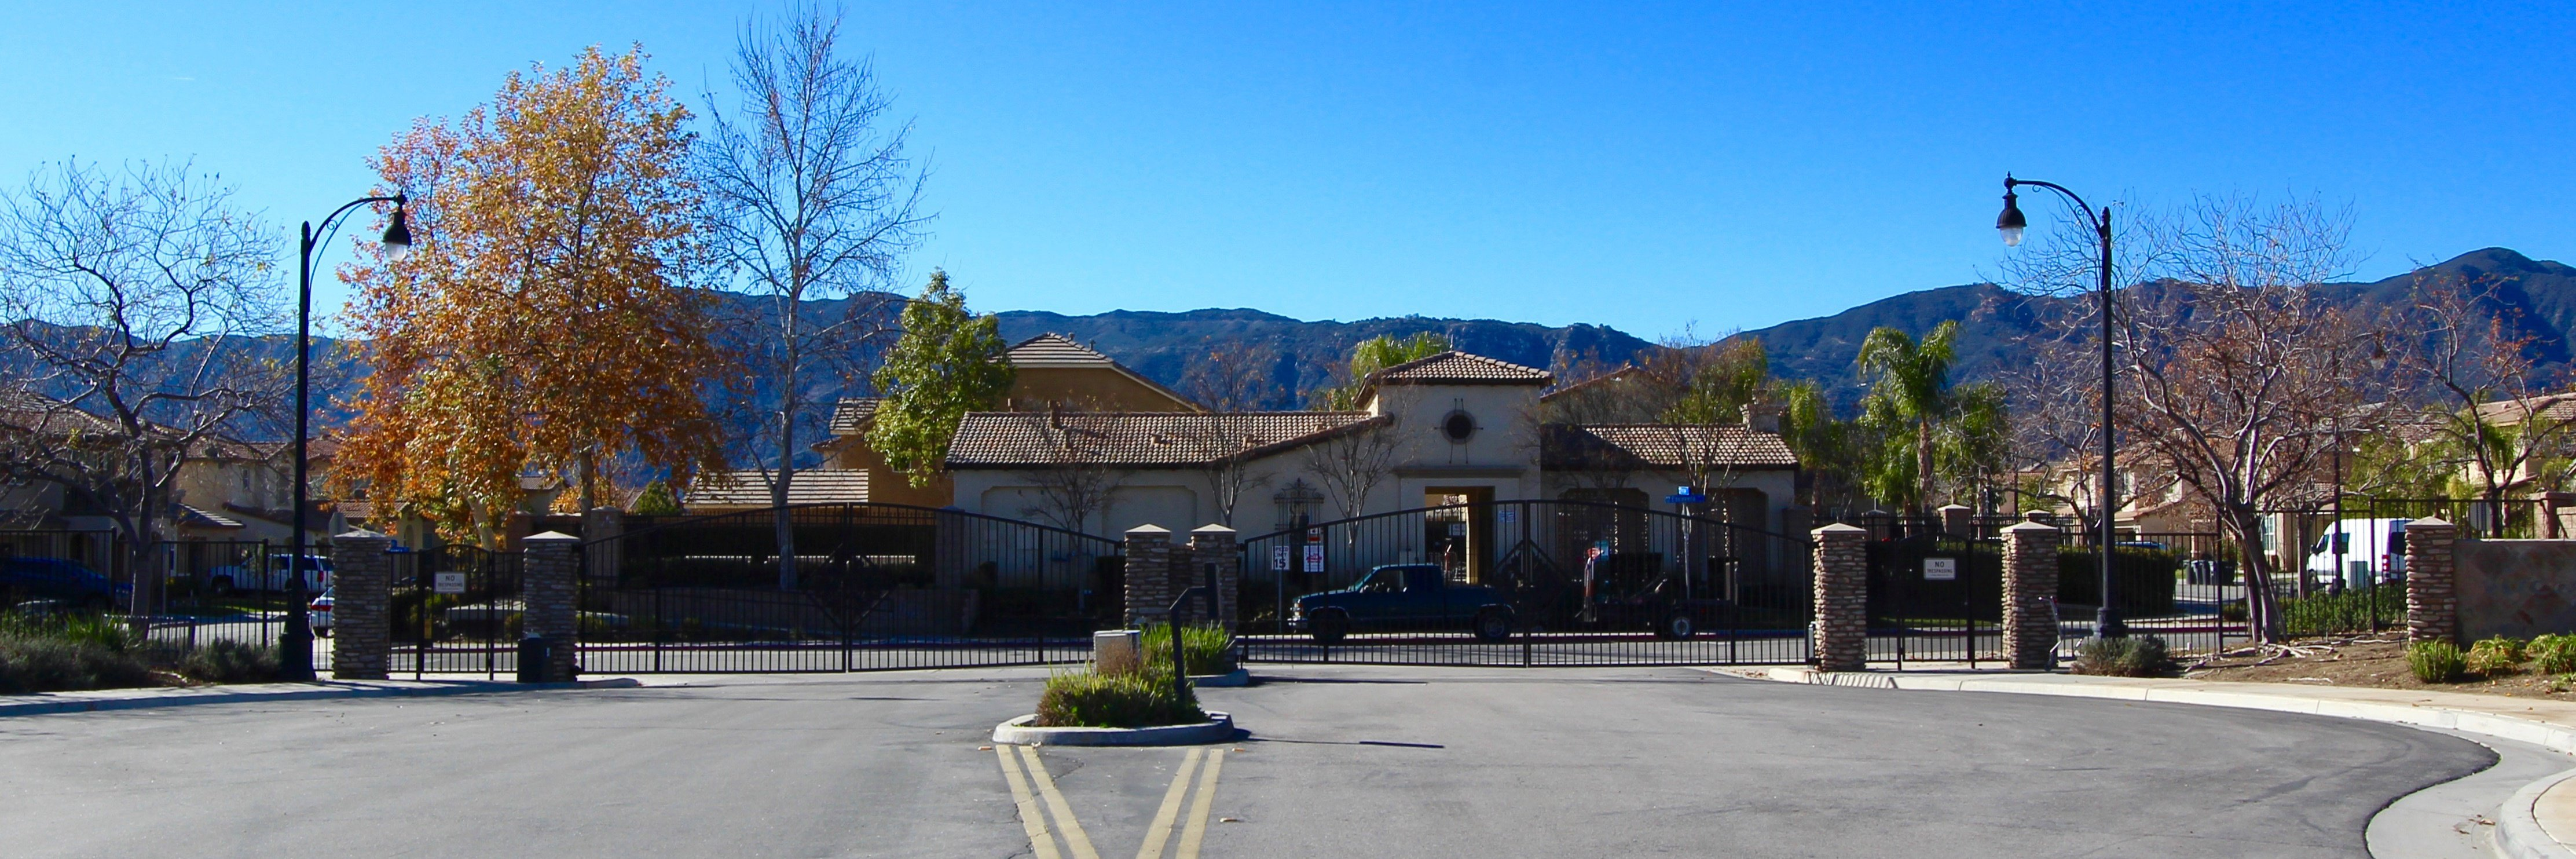 Viscaya is a community located in Viscaya Lake Elsinore CA